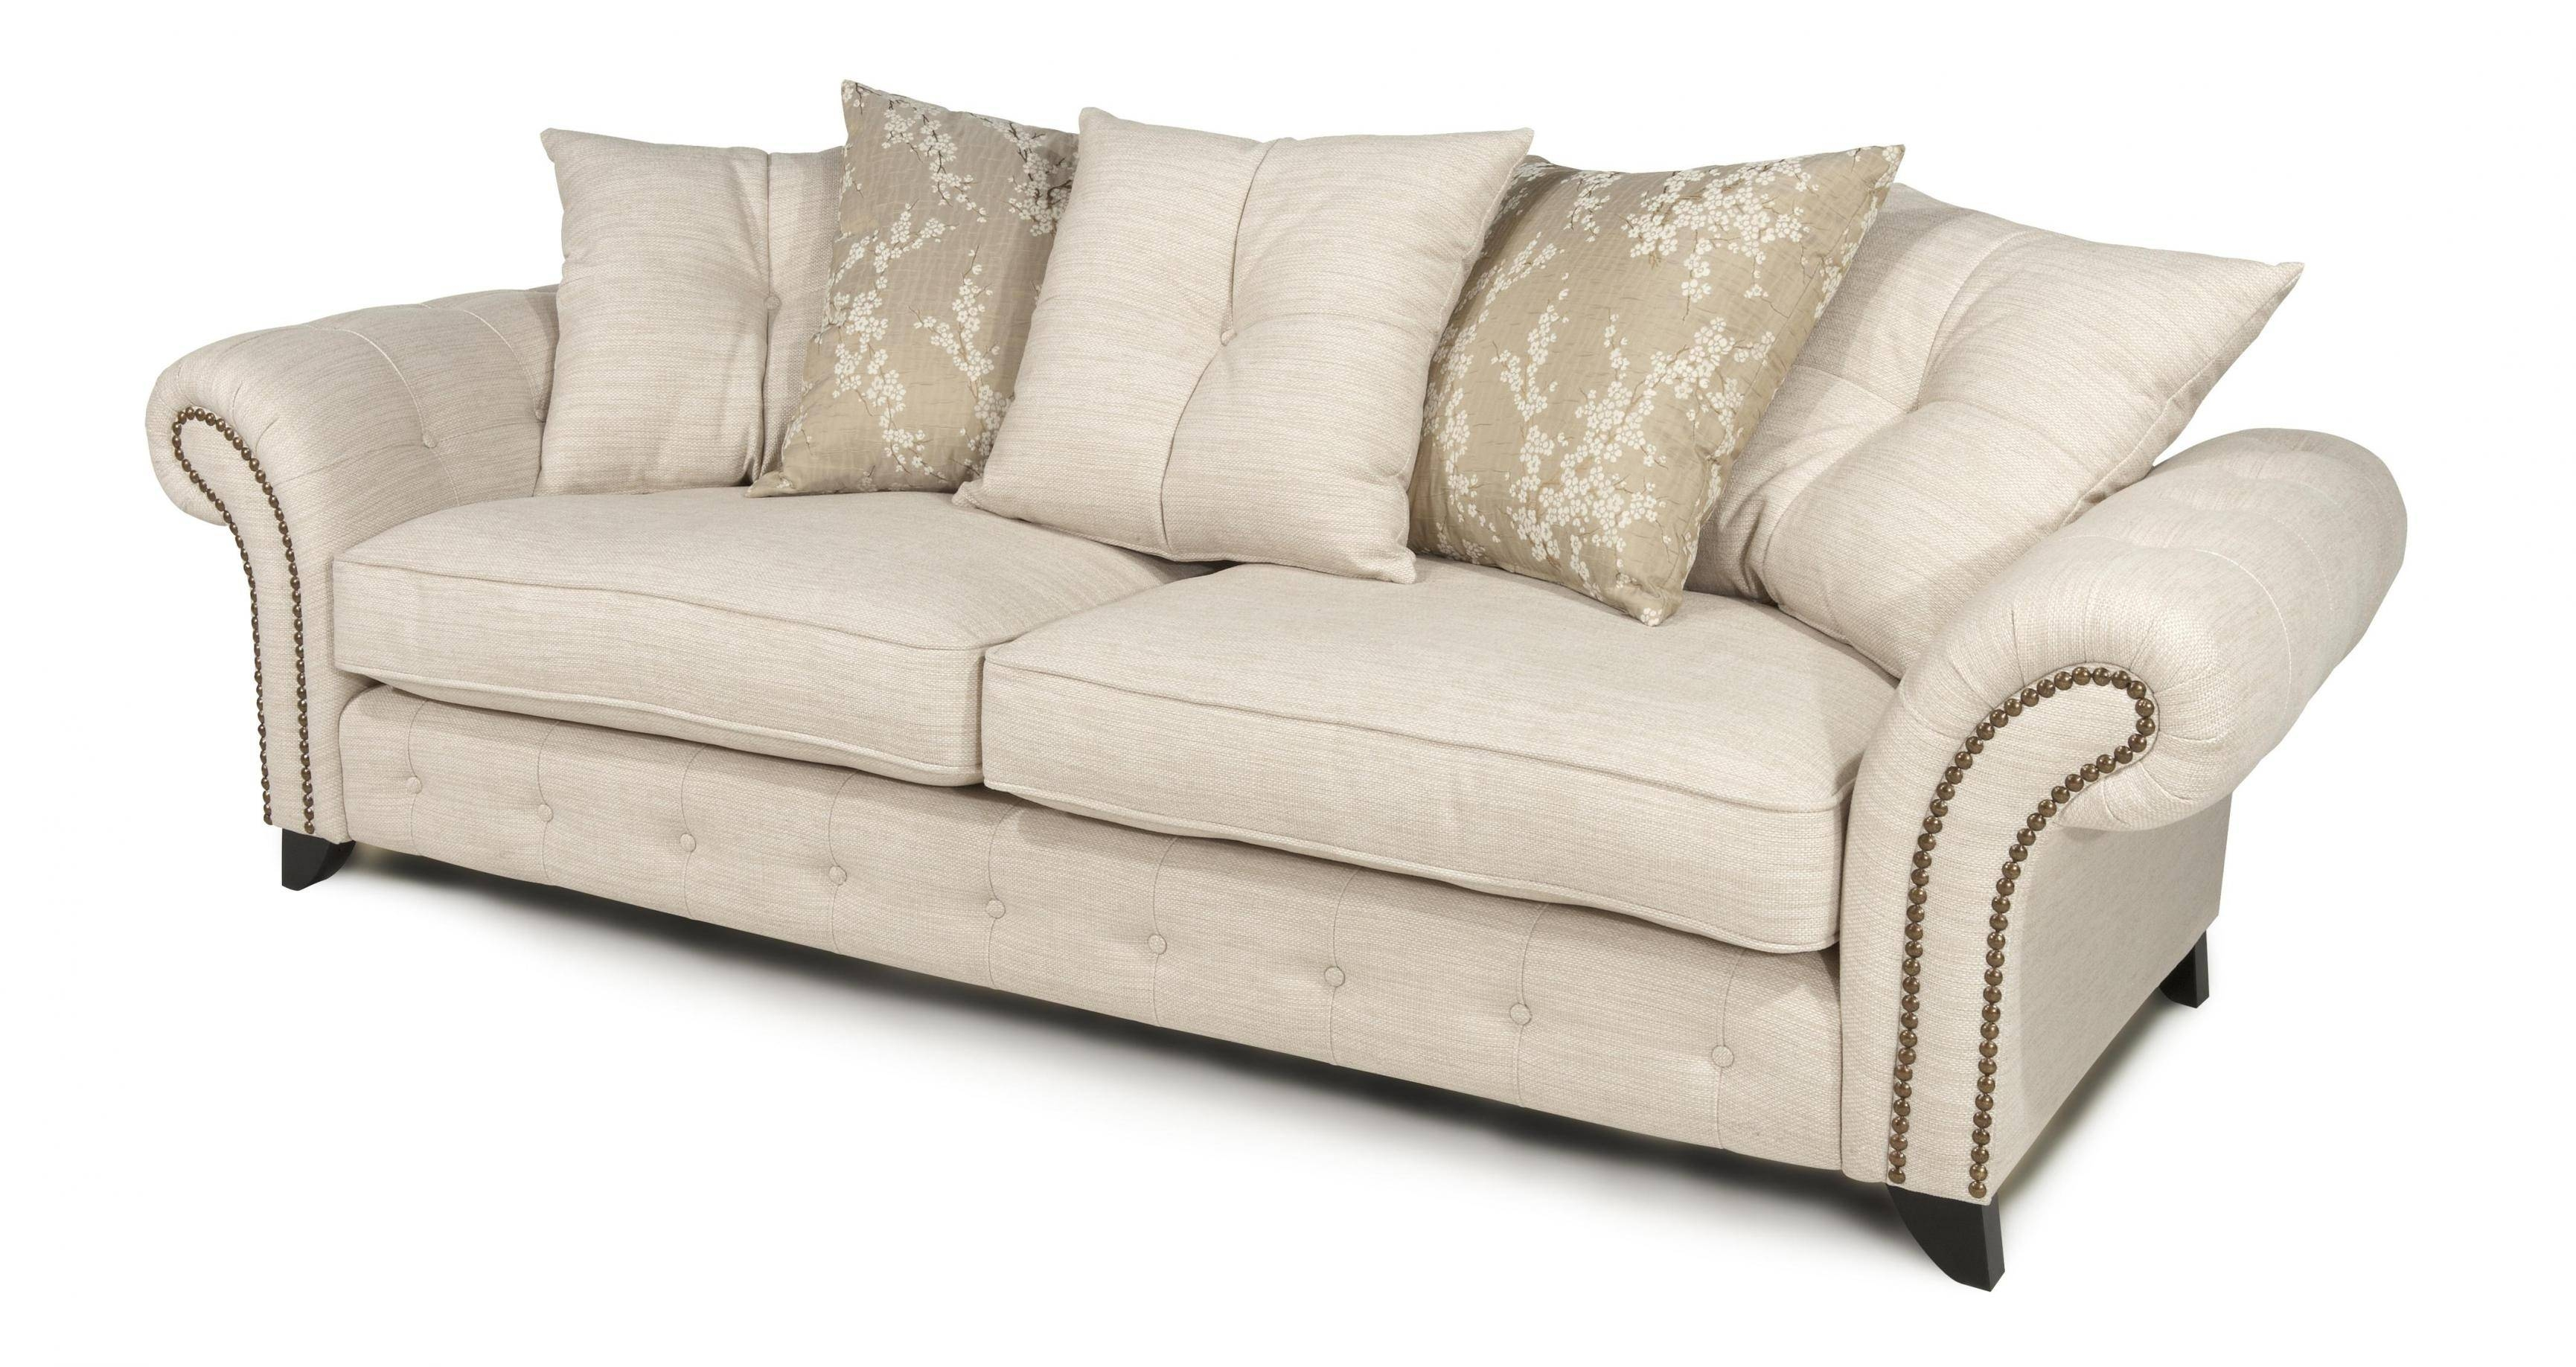 Elegant Fabric Sofas 27 With Elegant Fabric Sofas - Simoon throughout Elegant Fabric Sofas (Image 9 of 30)